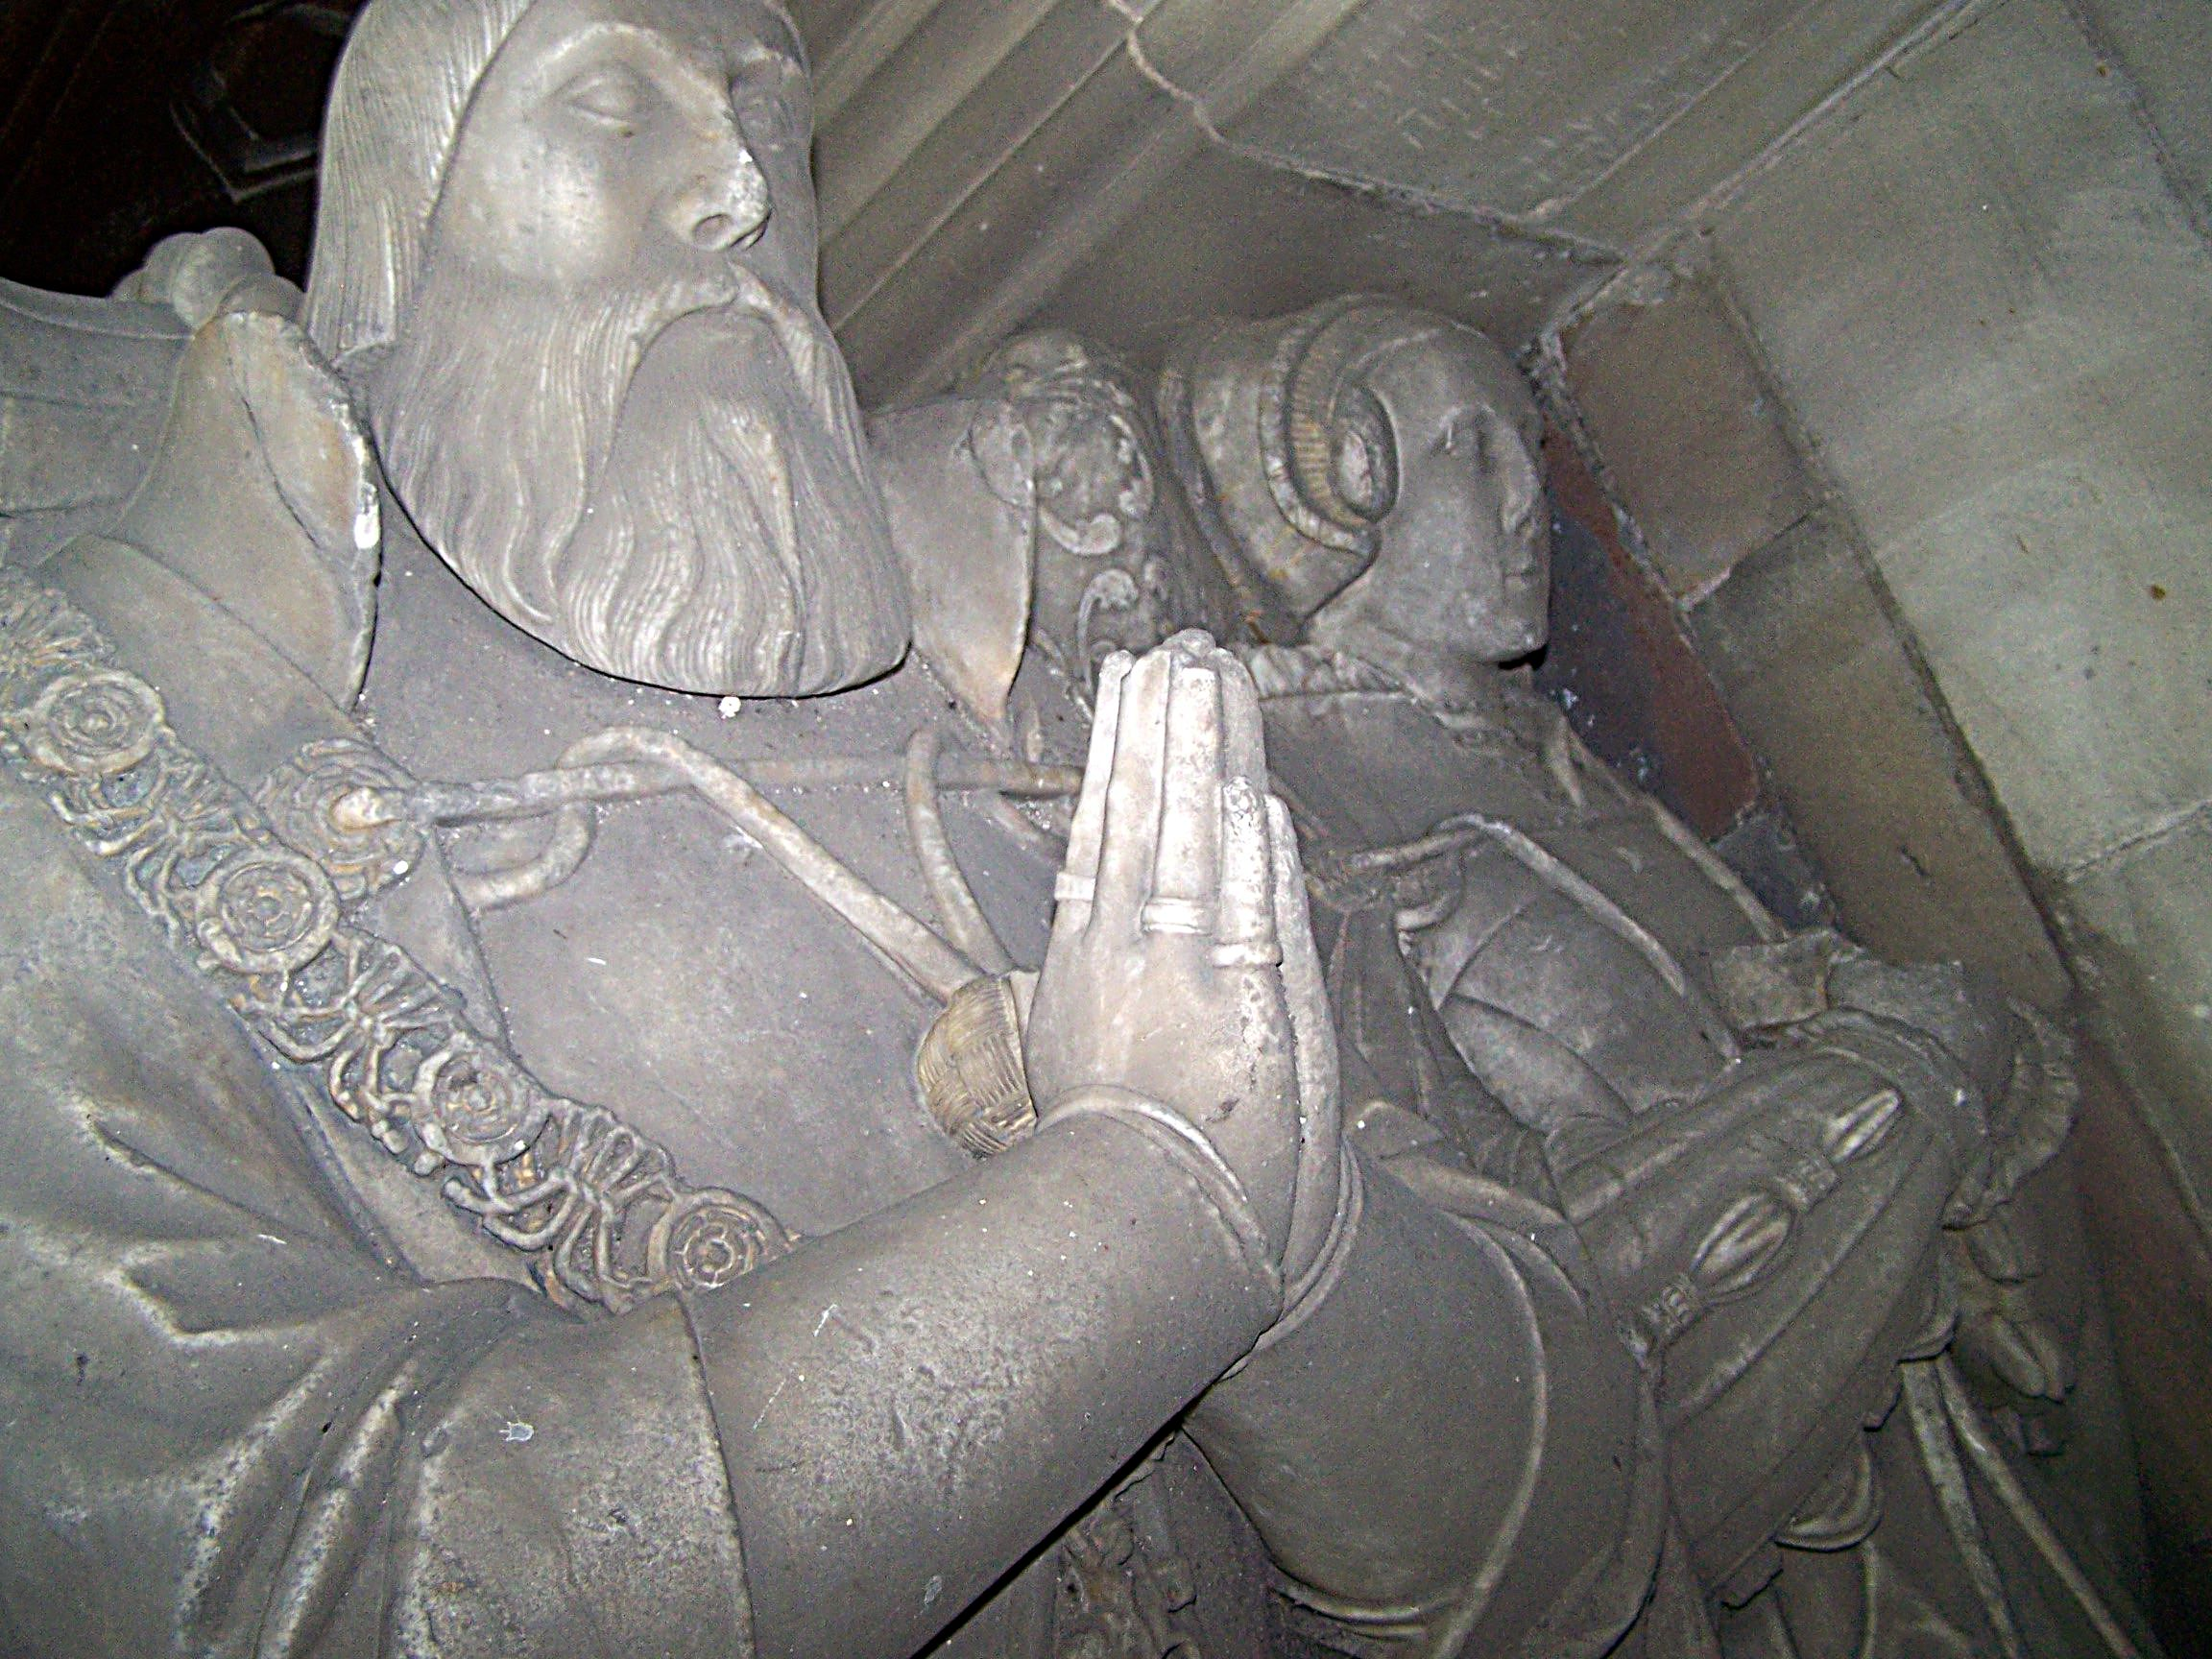 1558 (approx) - Monument of Walter Devereux and his second wife